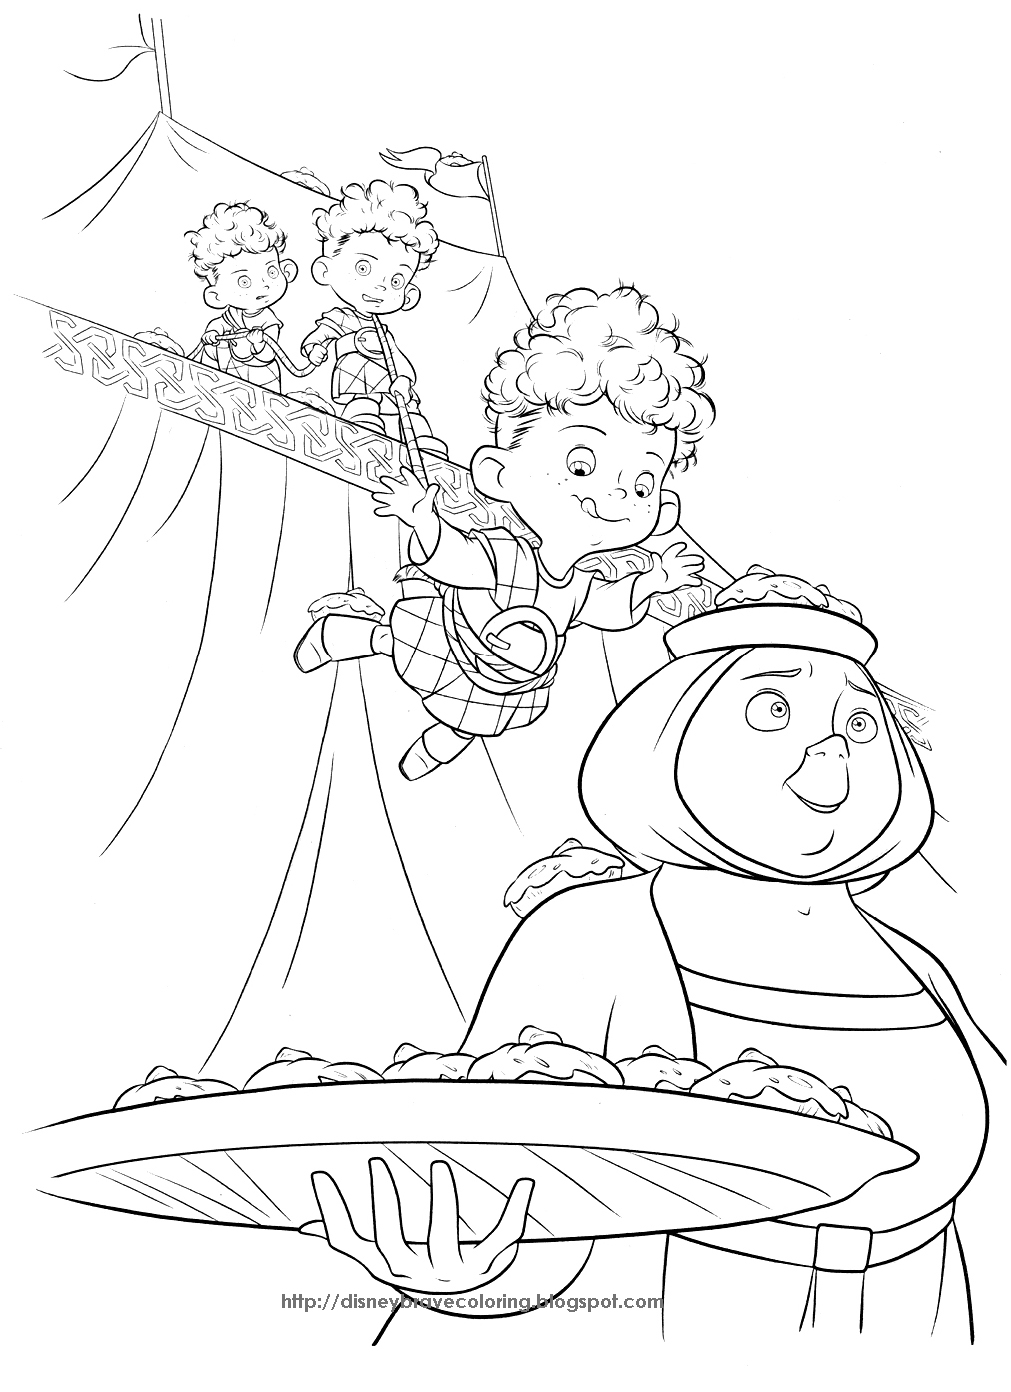 Young Merida – Brave Coloring Pages – Disney Movies List | 1392x1011